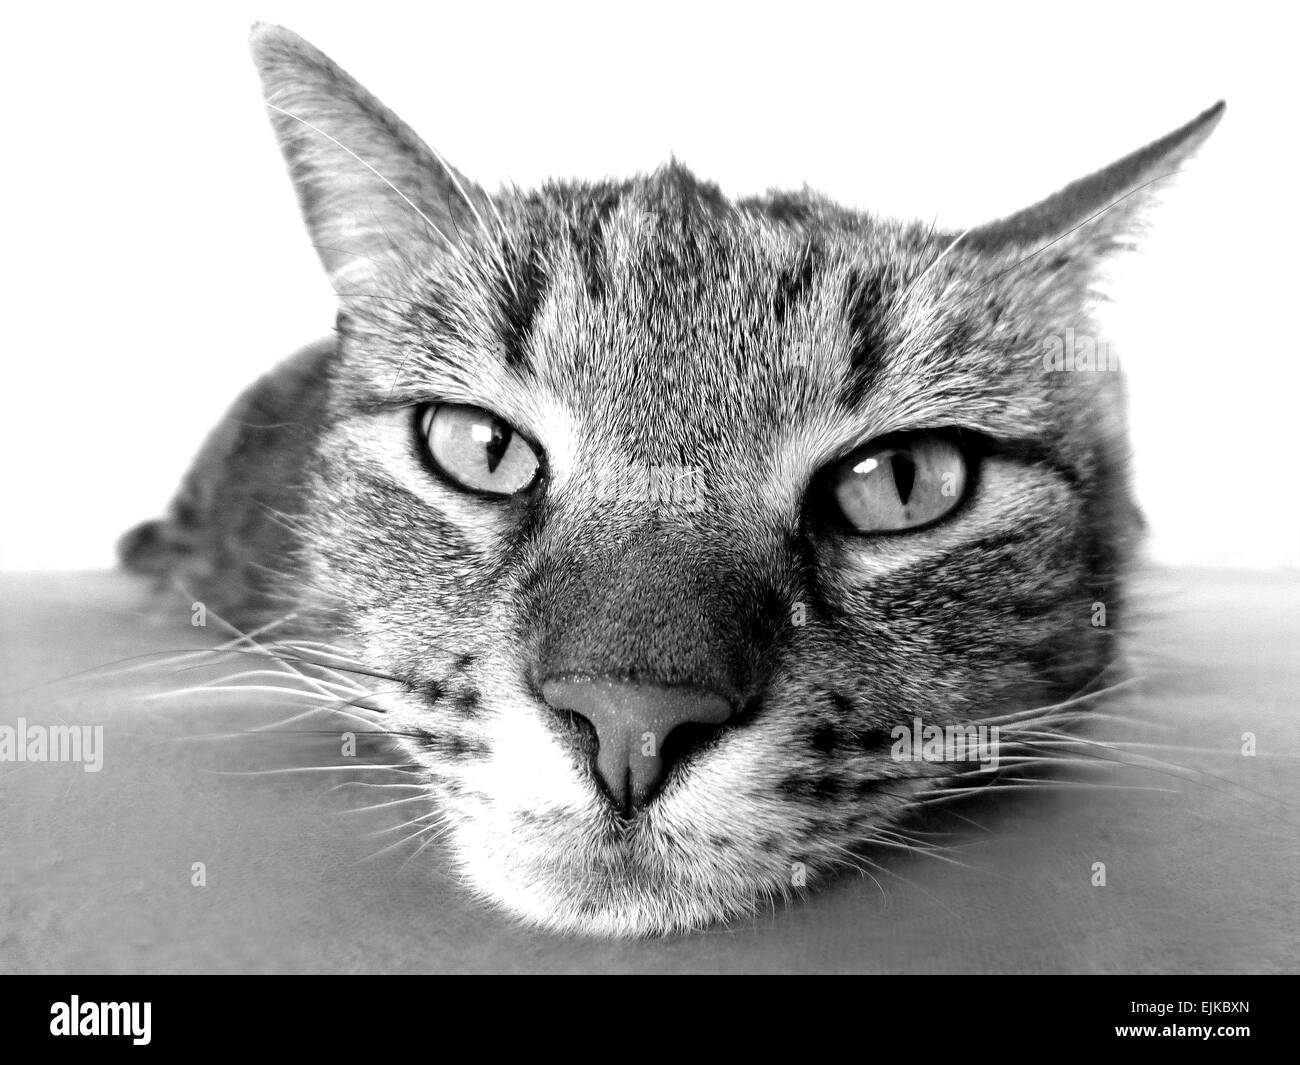 Cat black and white - Stock Image